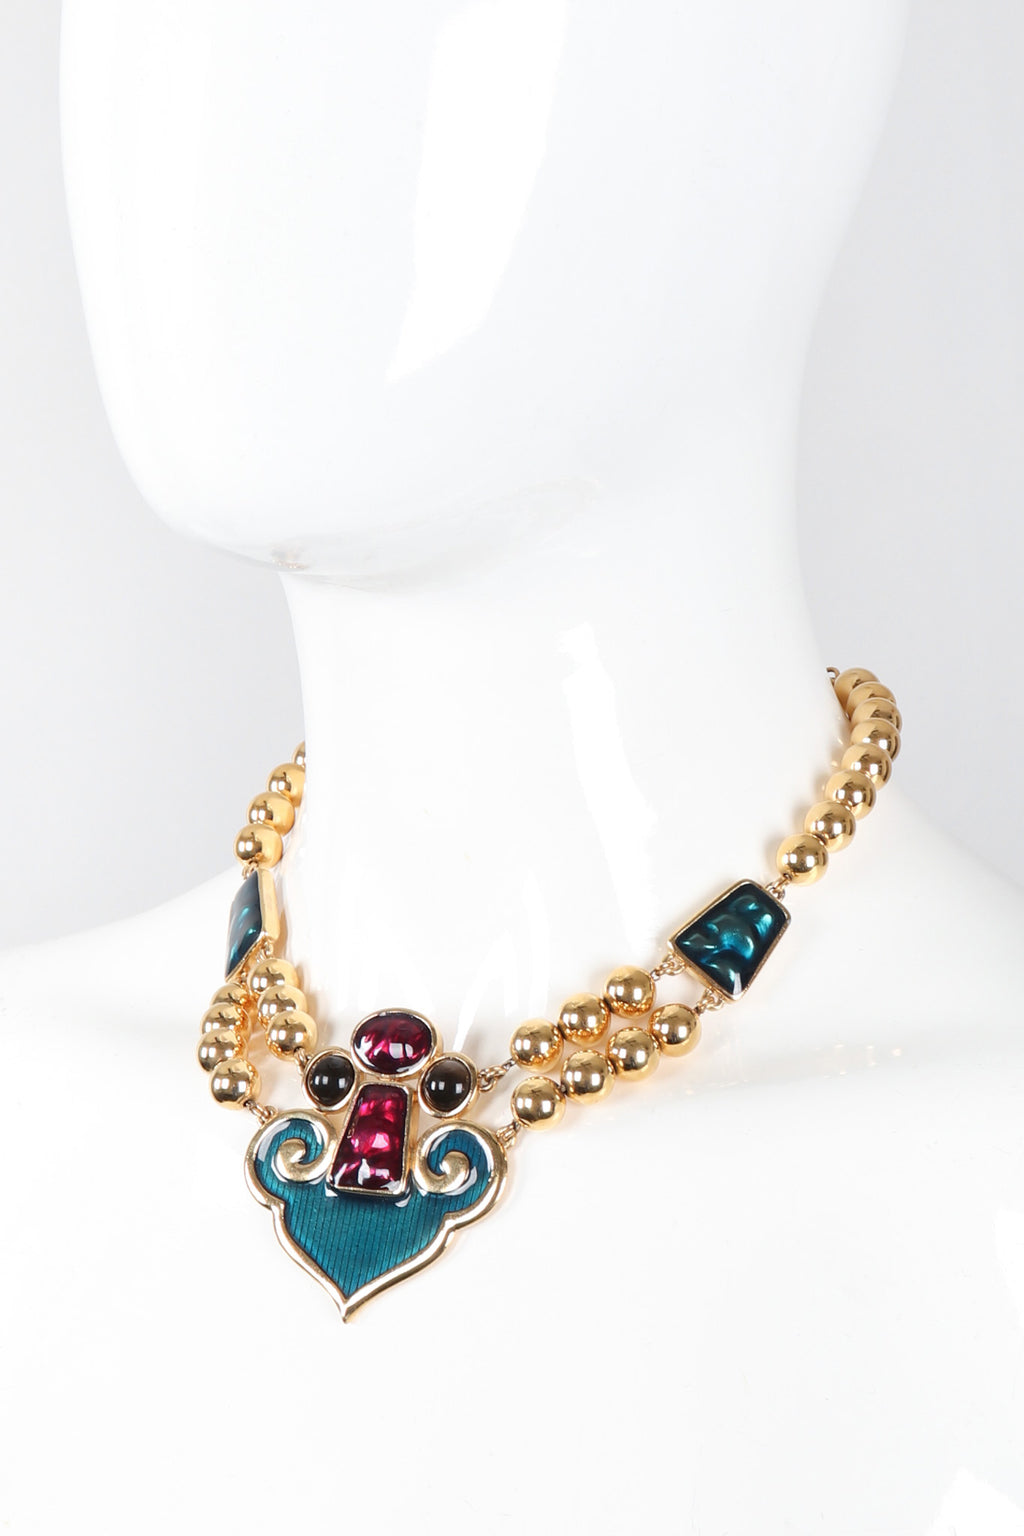 Recess Los Angeles Vintage YSL Yves Saint Laurent Enamel Moroccan Arabesque Necklace and Earring Set